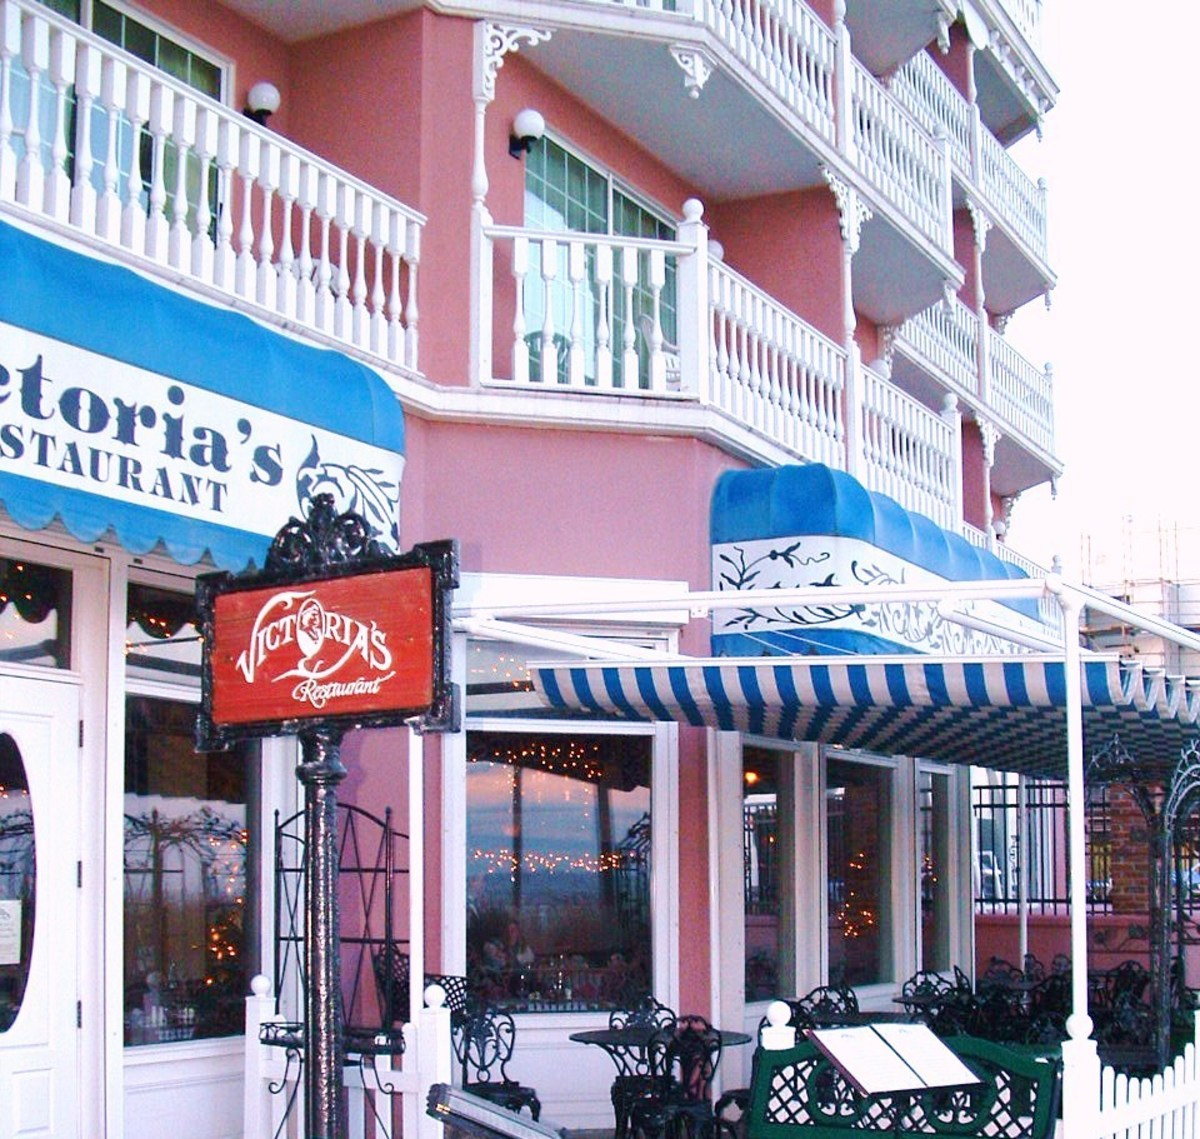 Victoria's Restaurant is part of the Boardwalk Plaza Hotel. This is a photo of the outdoor seating which is directly on the boardwalk. There is also a more formal dining room inside and oceanfront bar & lounge.